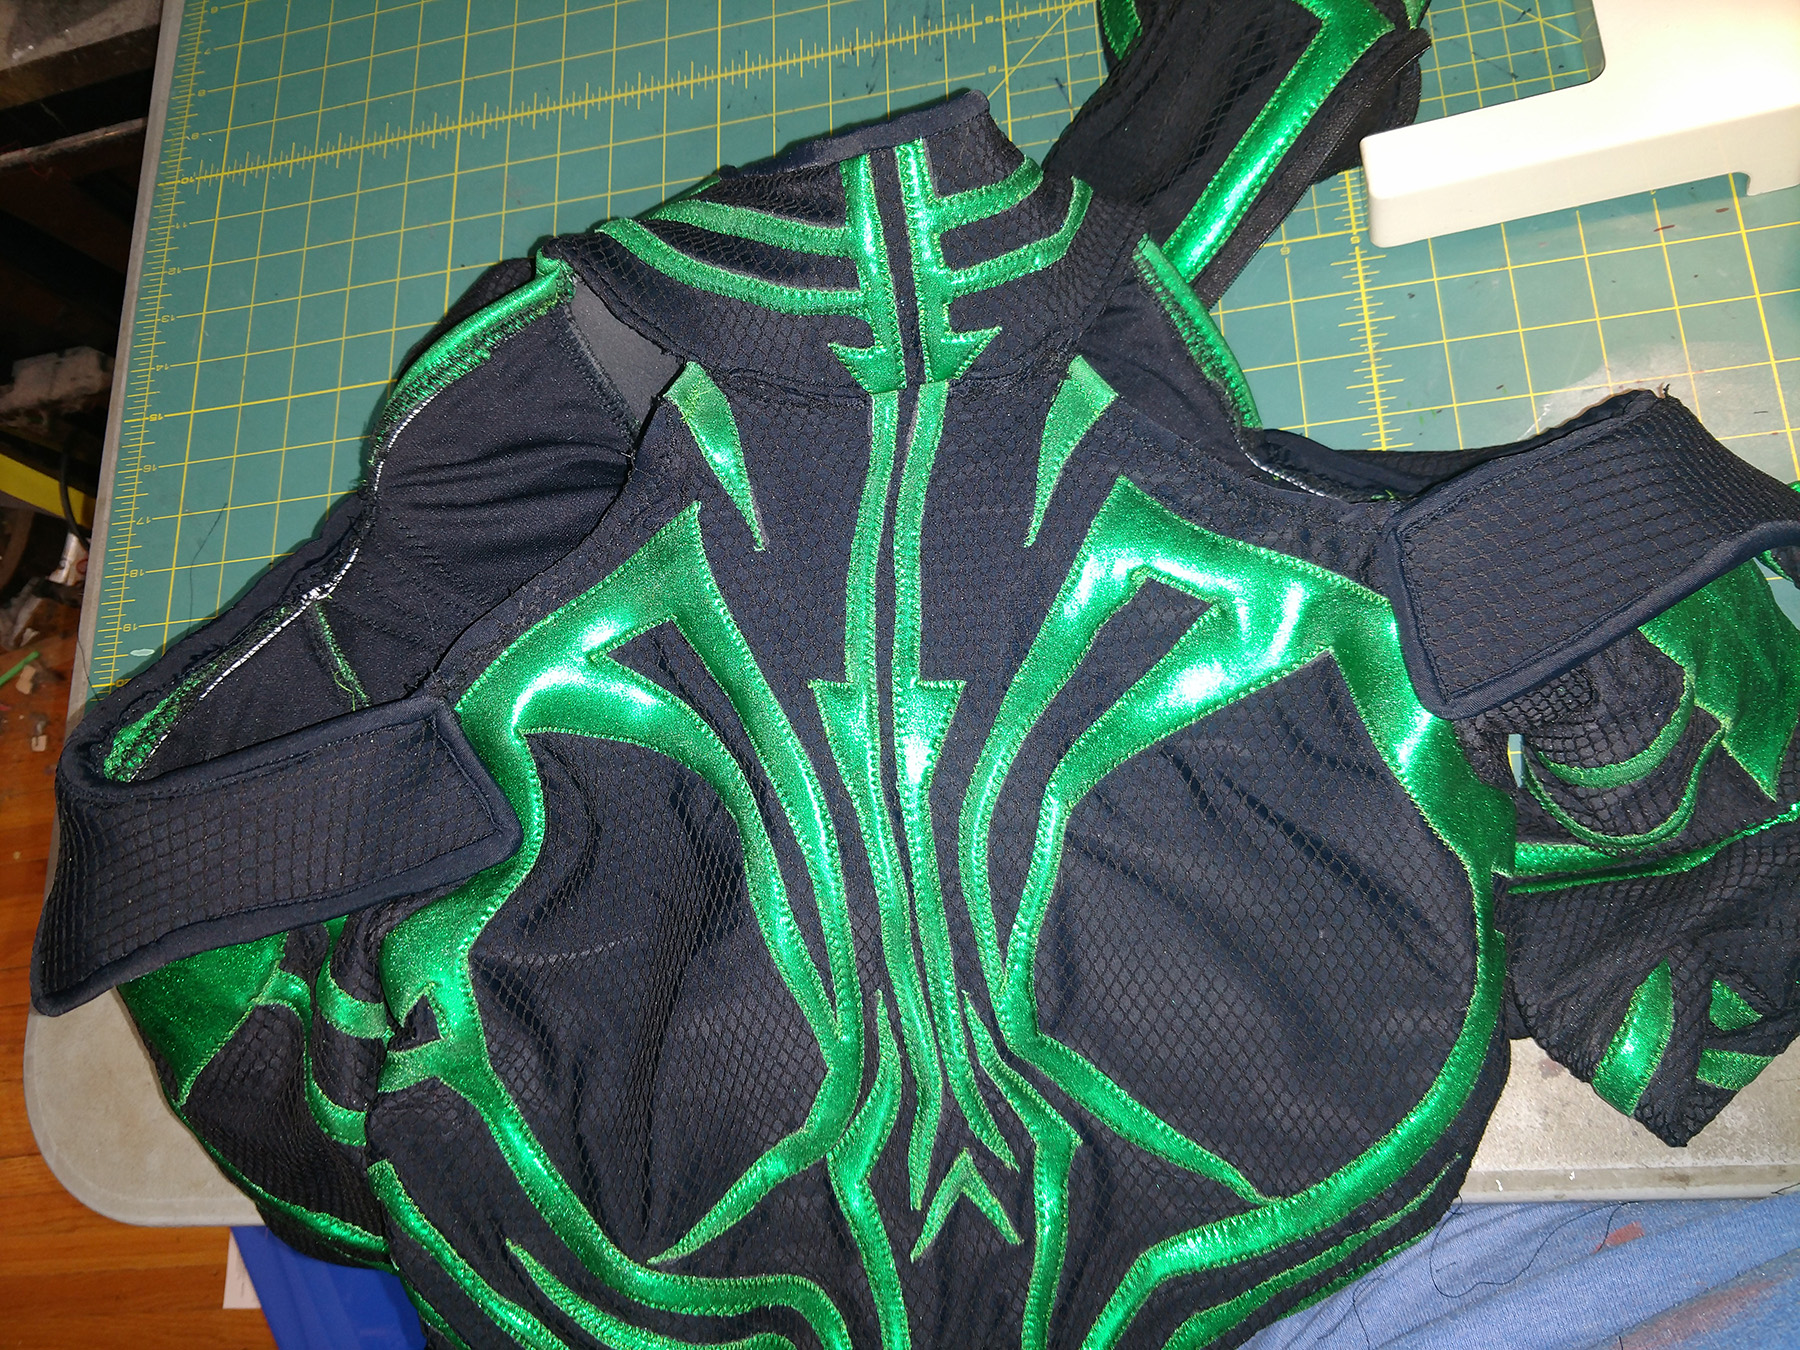 The Hela cosplay, folded up on a work surface, giving a close up view of the collar and shoulder area.